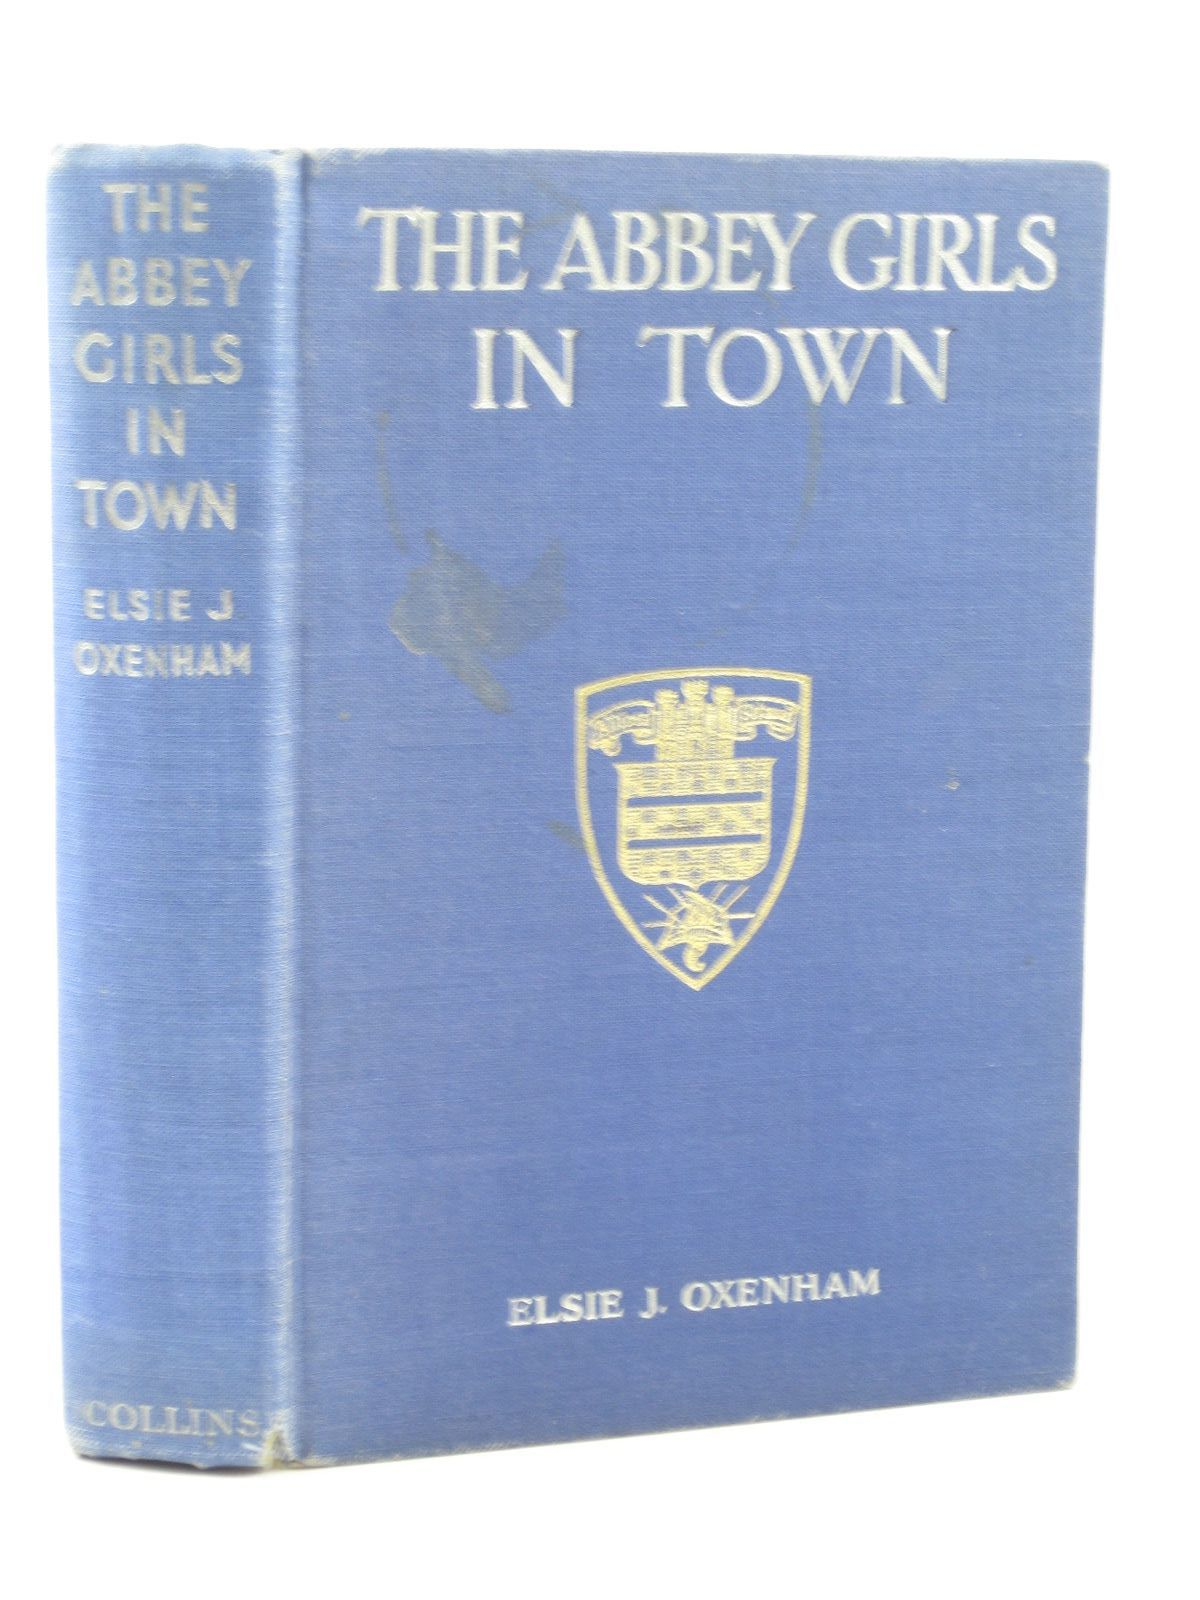 Photo of THE ABBEY GIRLS IN TOWN written by Oxenham, Elsie J. published by Collins (STOCK CODE: 1311758)  for sale by Stella & Rose's Books